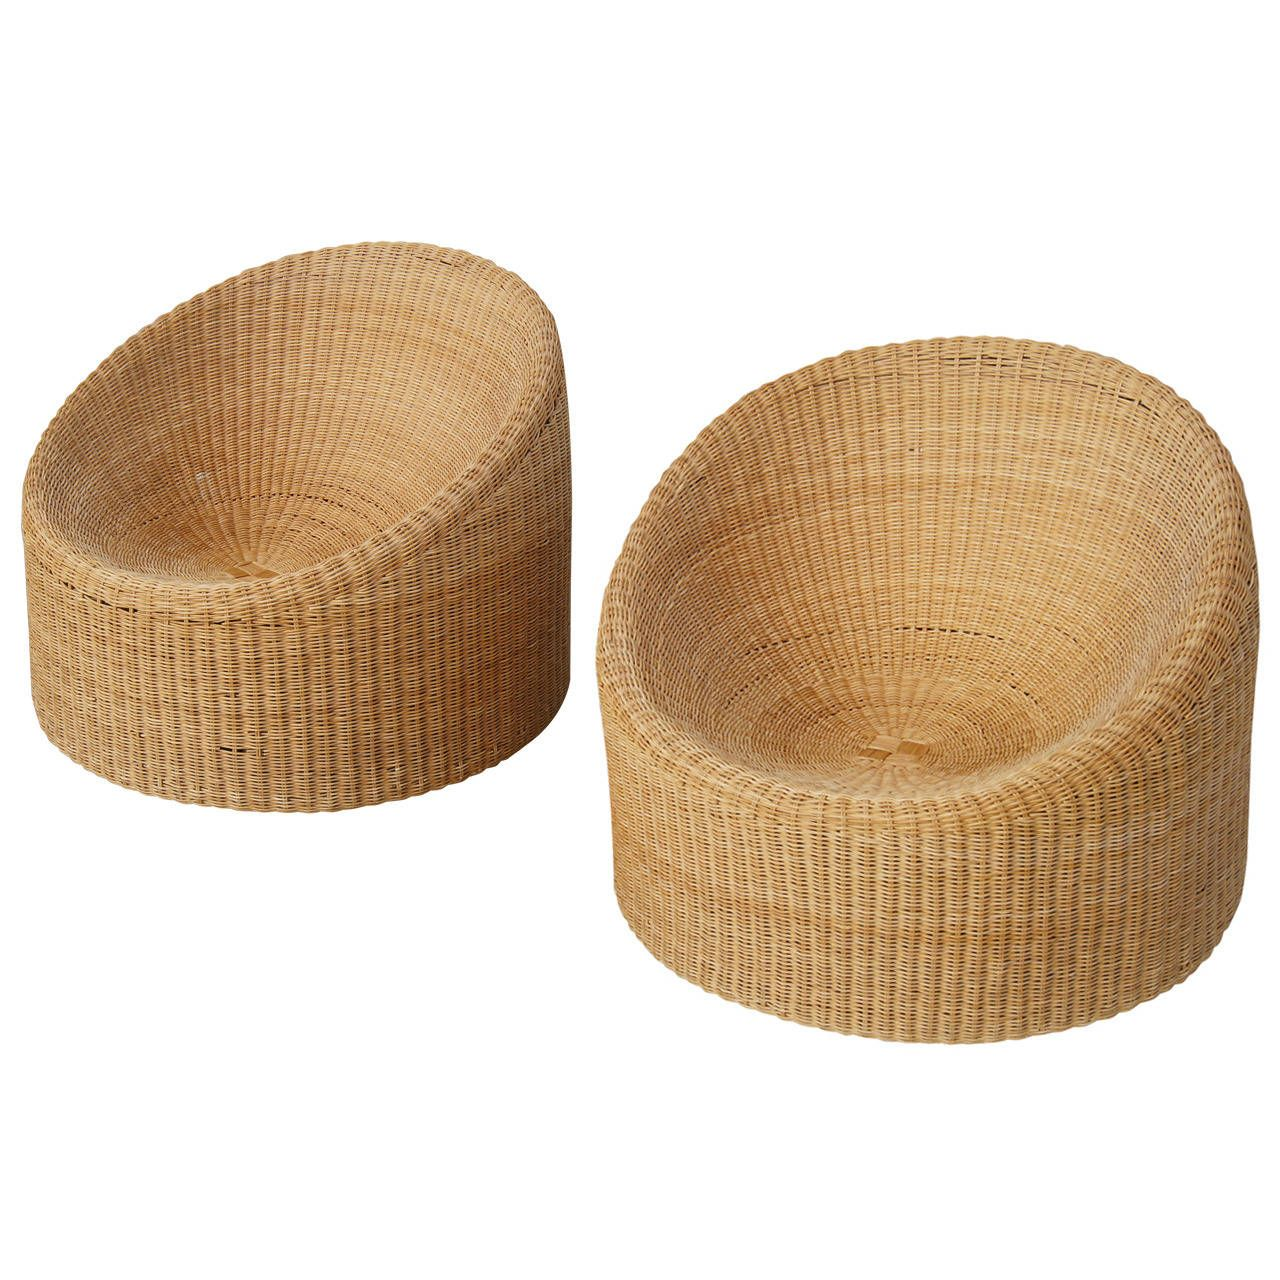 pair of wicker chairs by eero aarnio furniture design and chairs